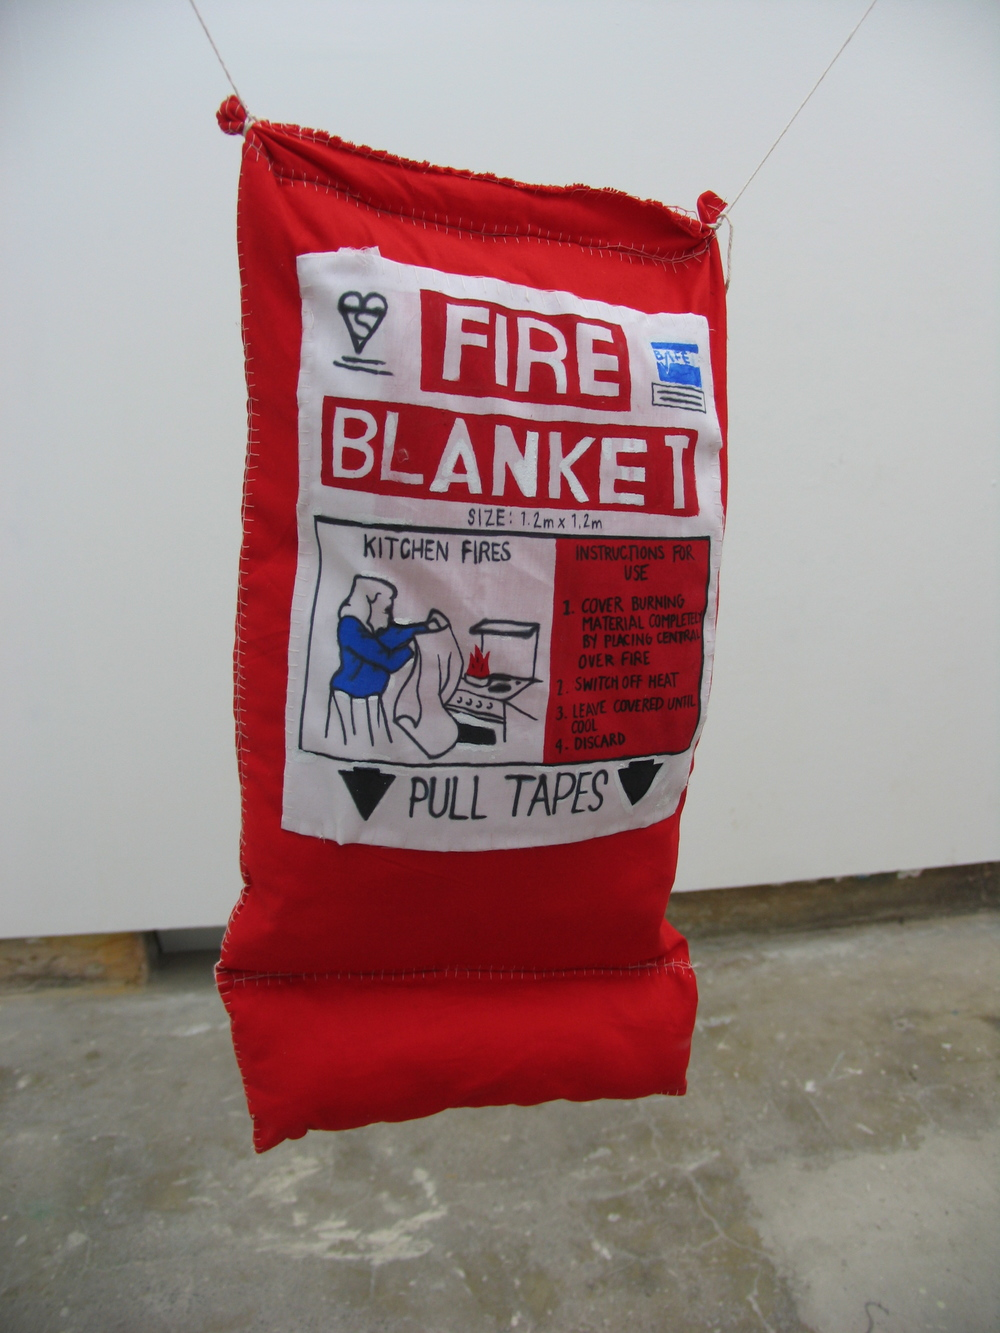 Charm Blanket, 2012  Acrylic paint, permanent marker, fabric, stuffing   470mm x 250mm x 60mm